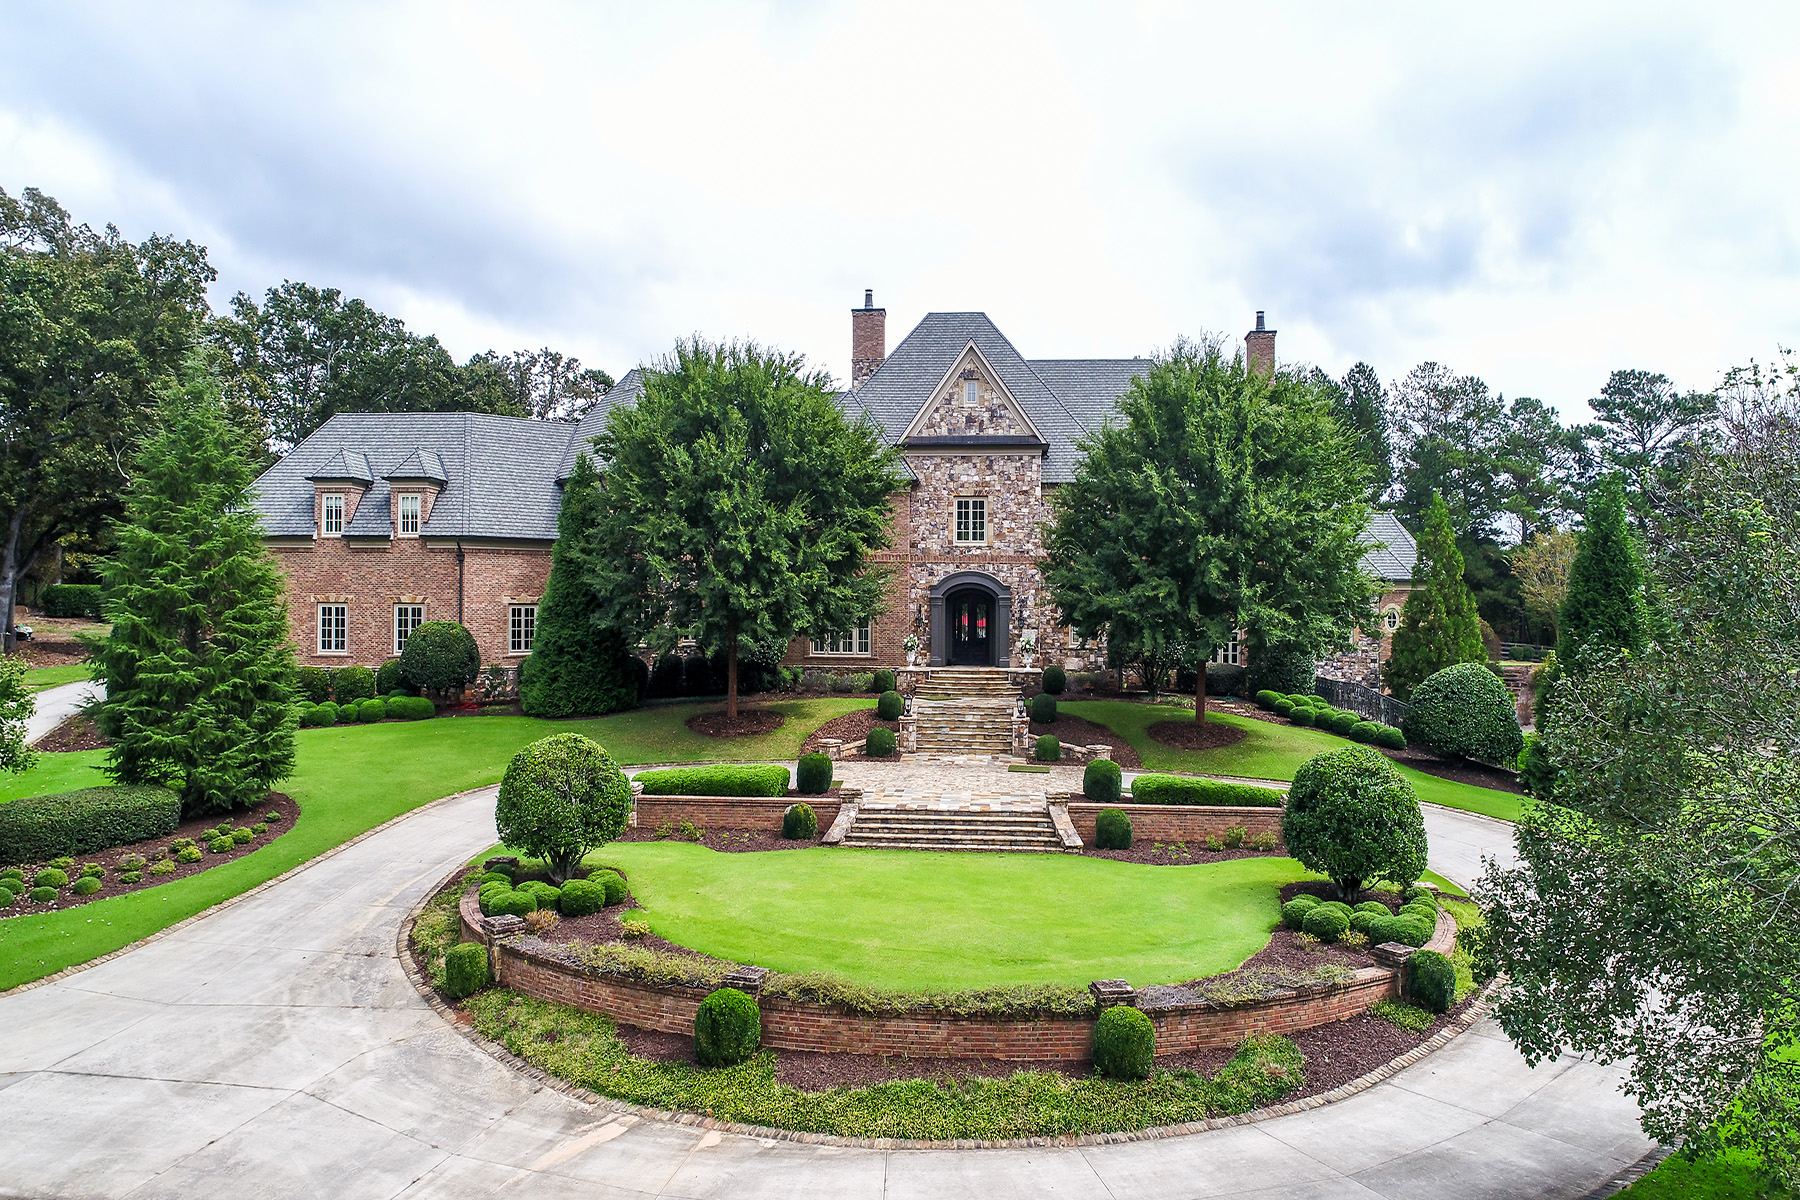 Single Family Homes for Sale at Exquisite Custom Estate in Milton's Horse Country 14680 Freemanville Road Milton, Georgia 30004 United States